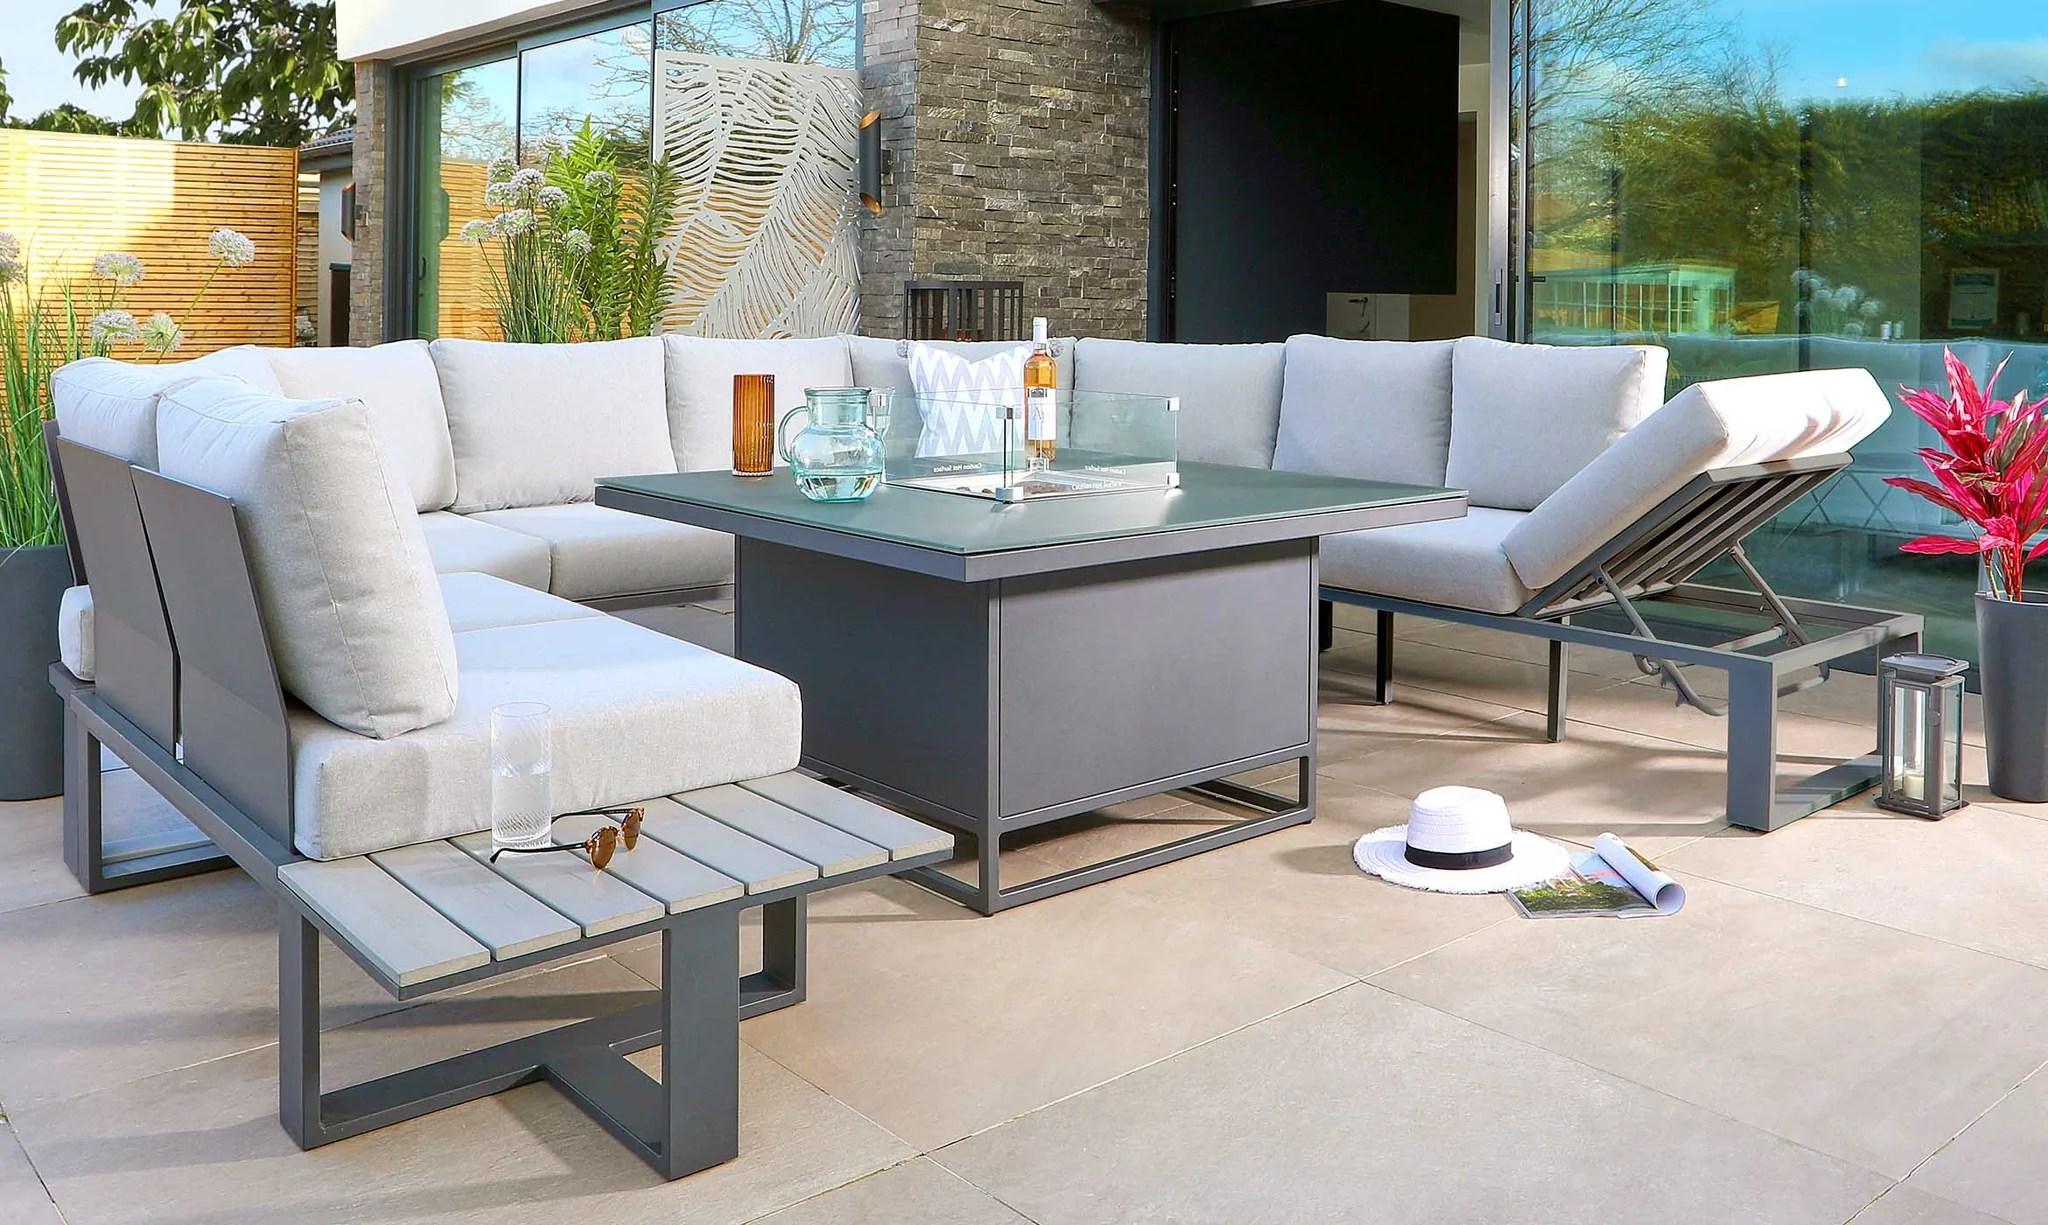 Danetti Outdoor Get To Know Our New Range Of Modern Garden Furniture